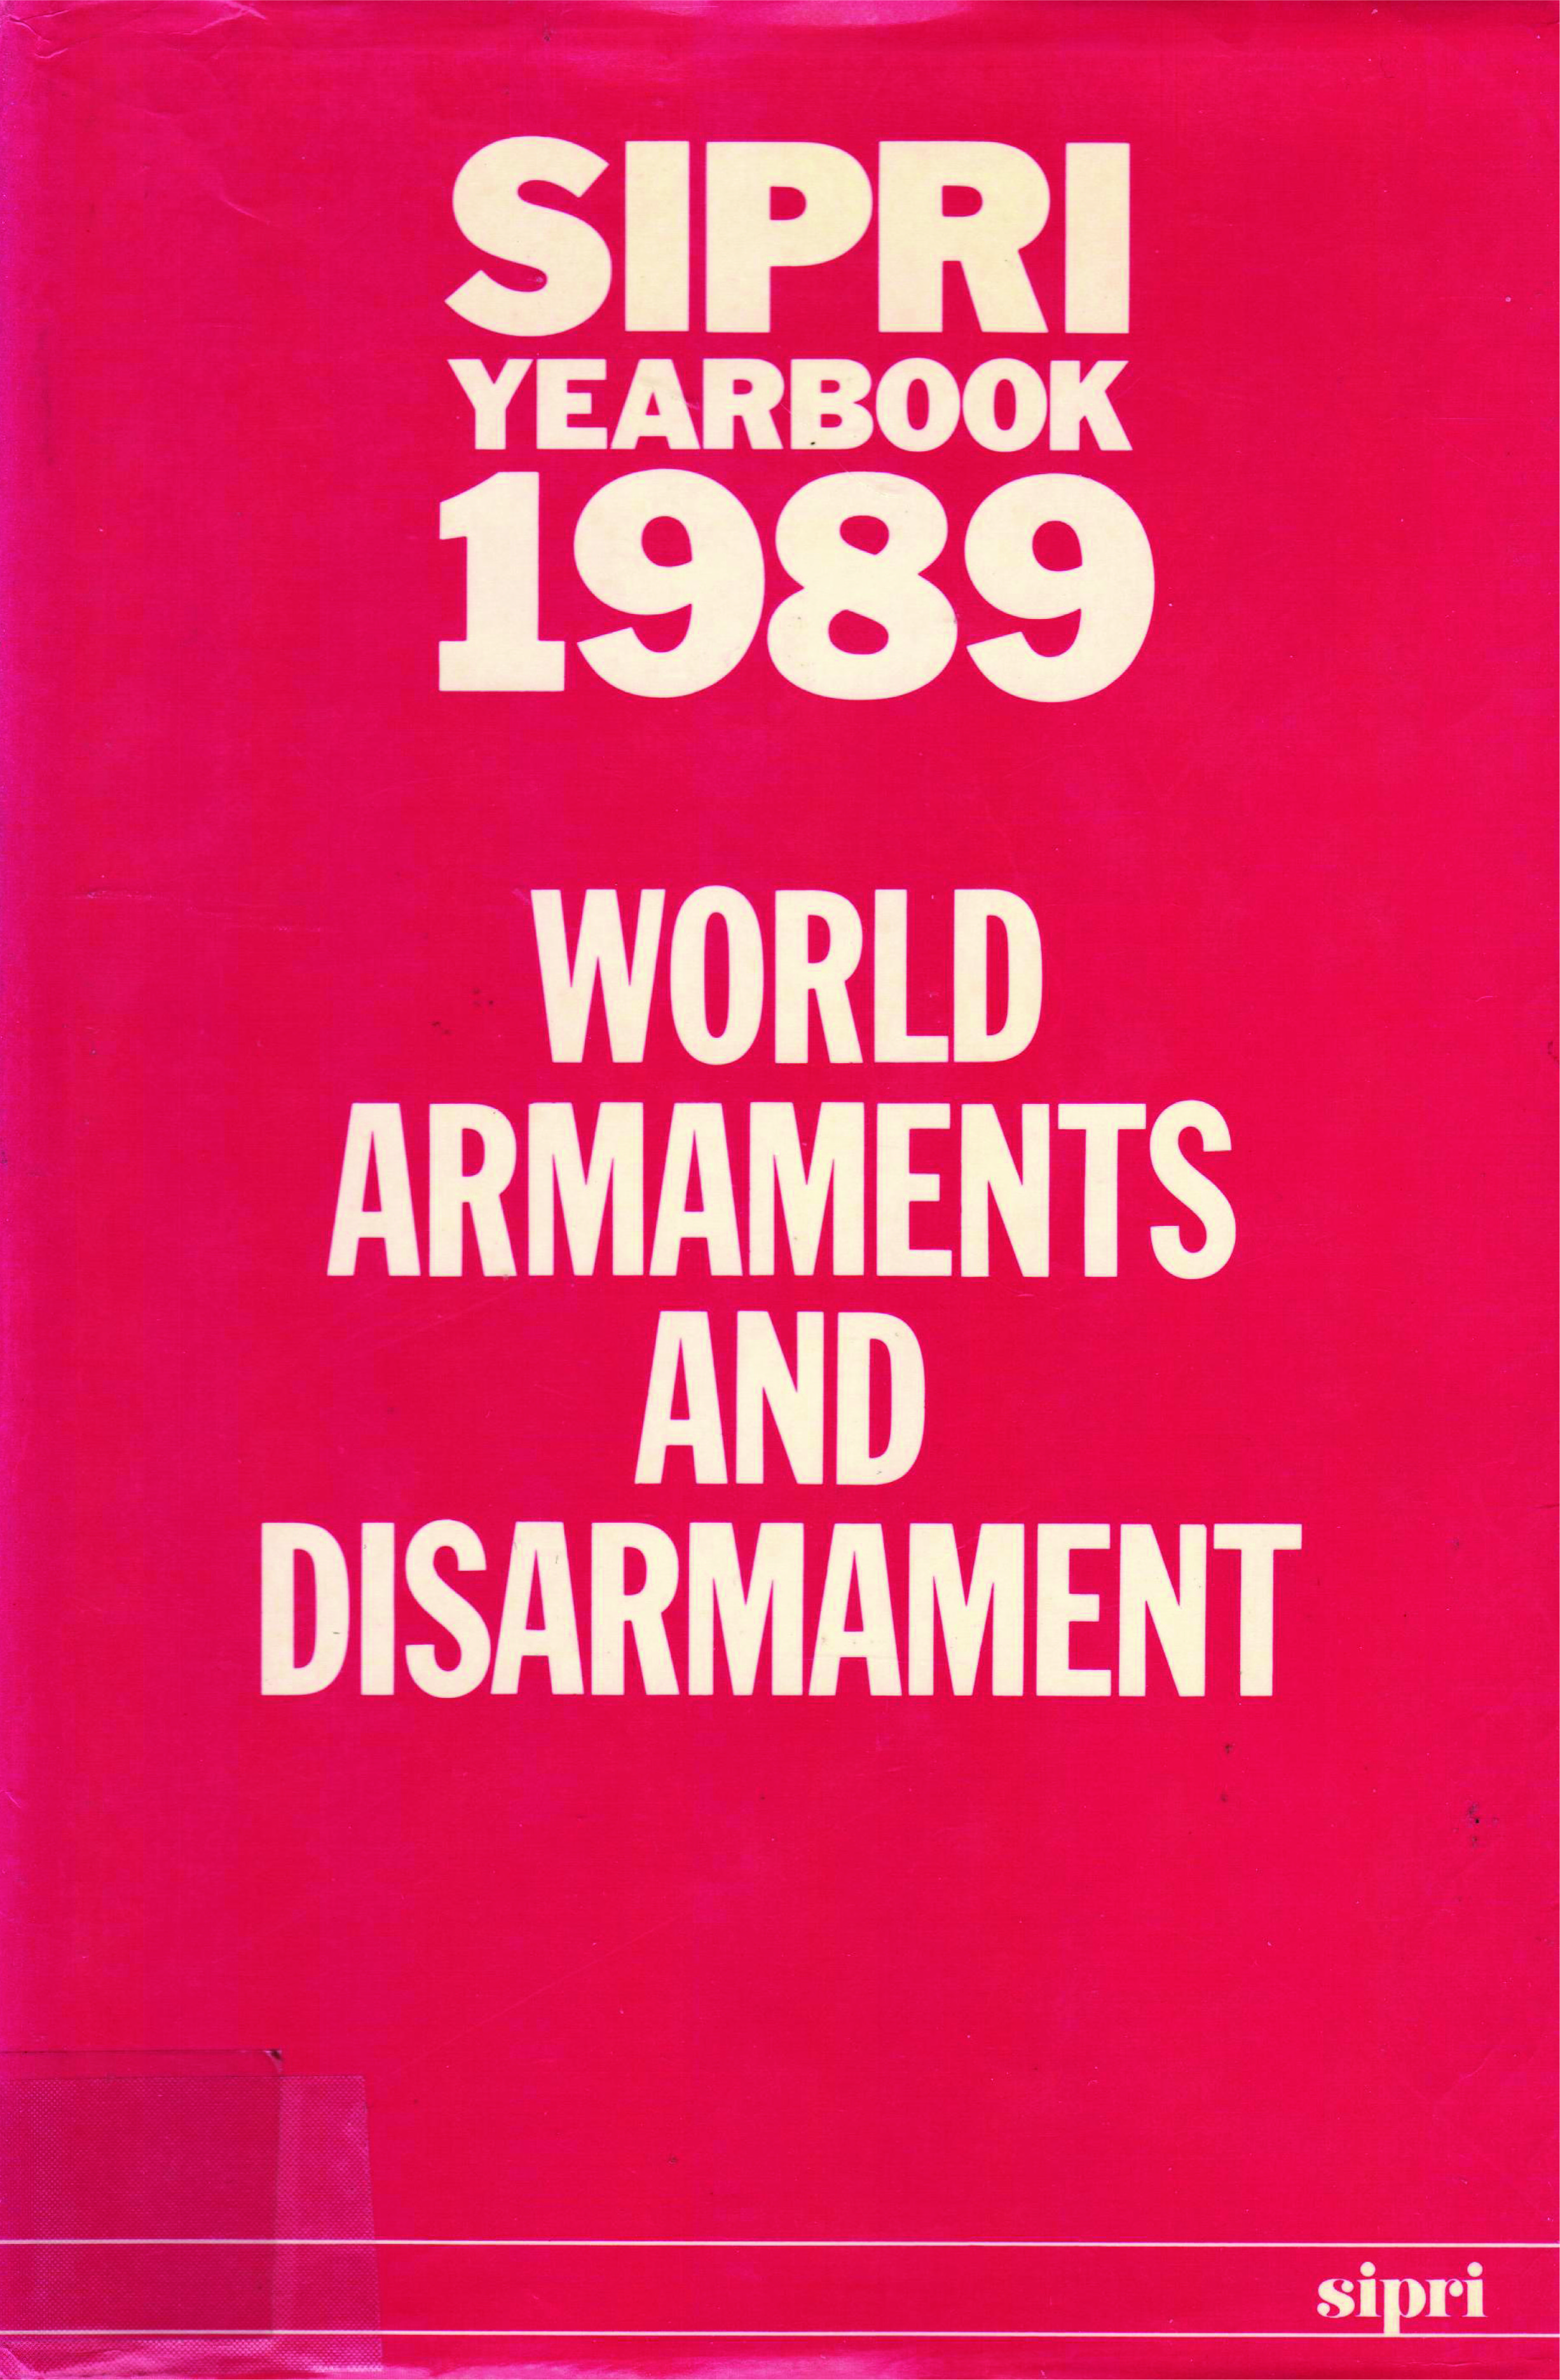 Cover for SIPRI 1989